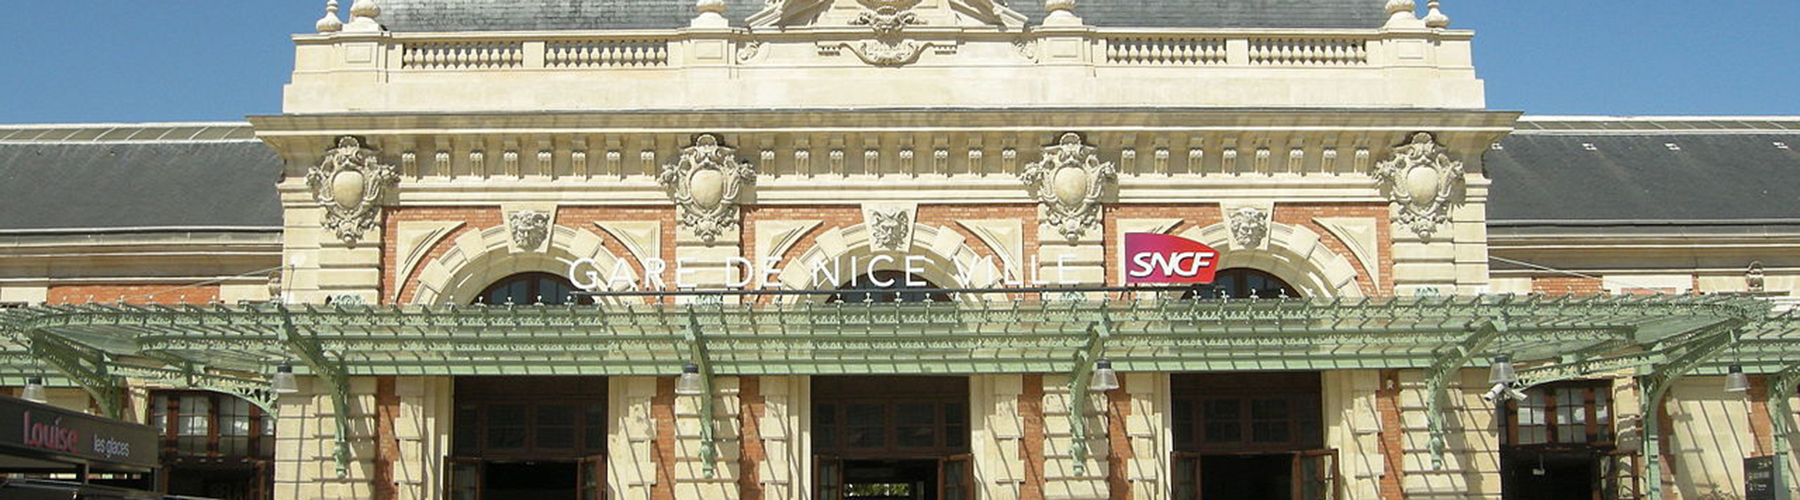 Nice – Apartments close to Gare de Nice railway station. Maps of Nice, Photos and Reviews for each Apartment in Nice.